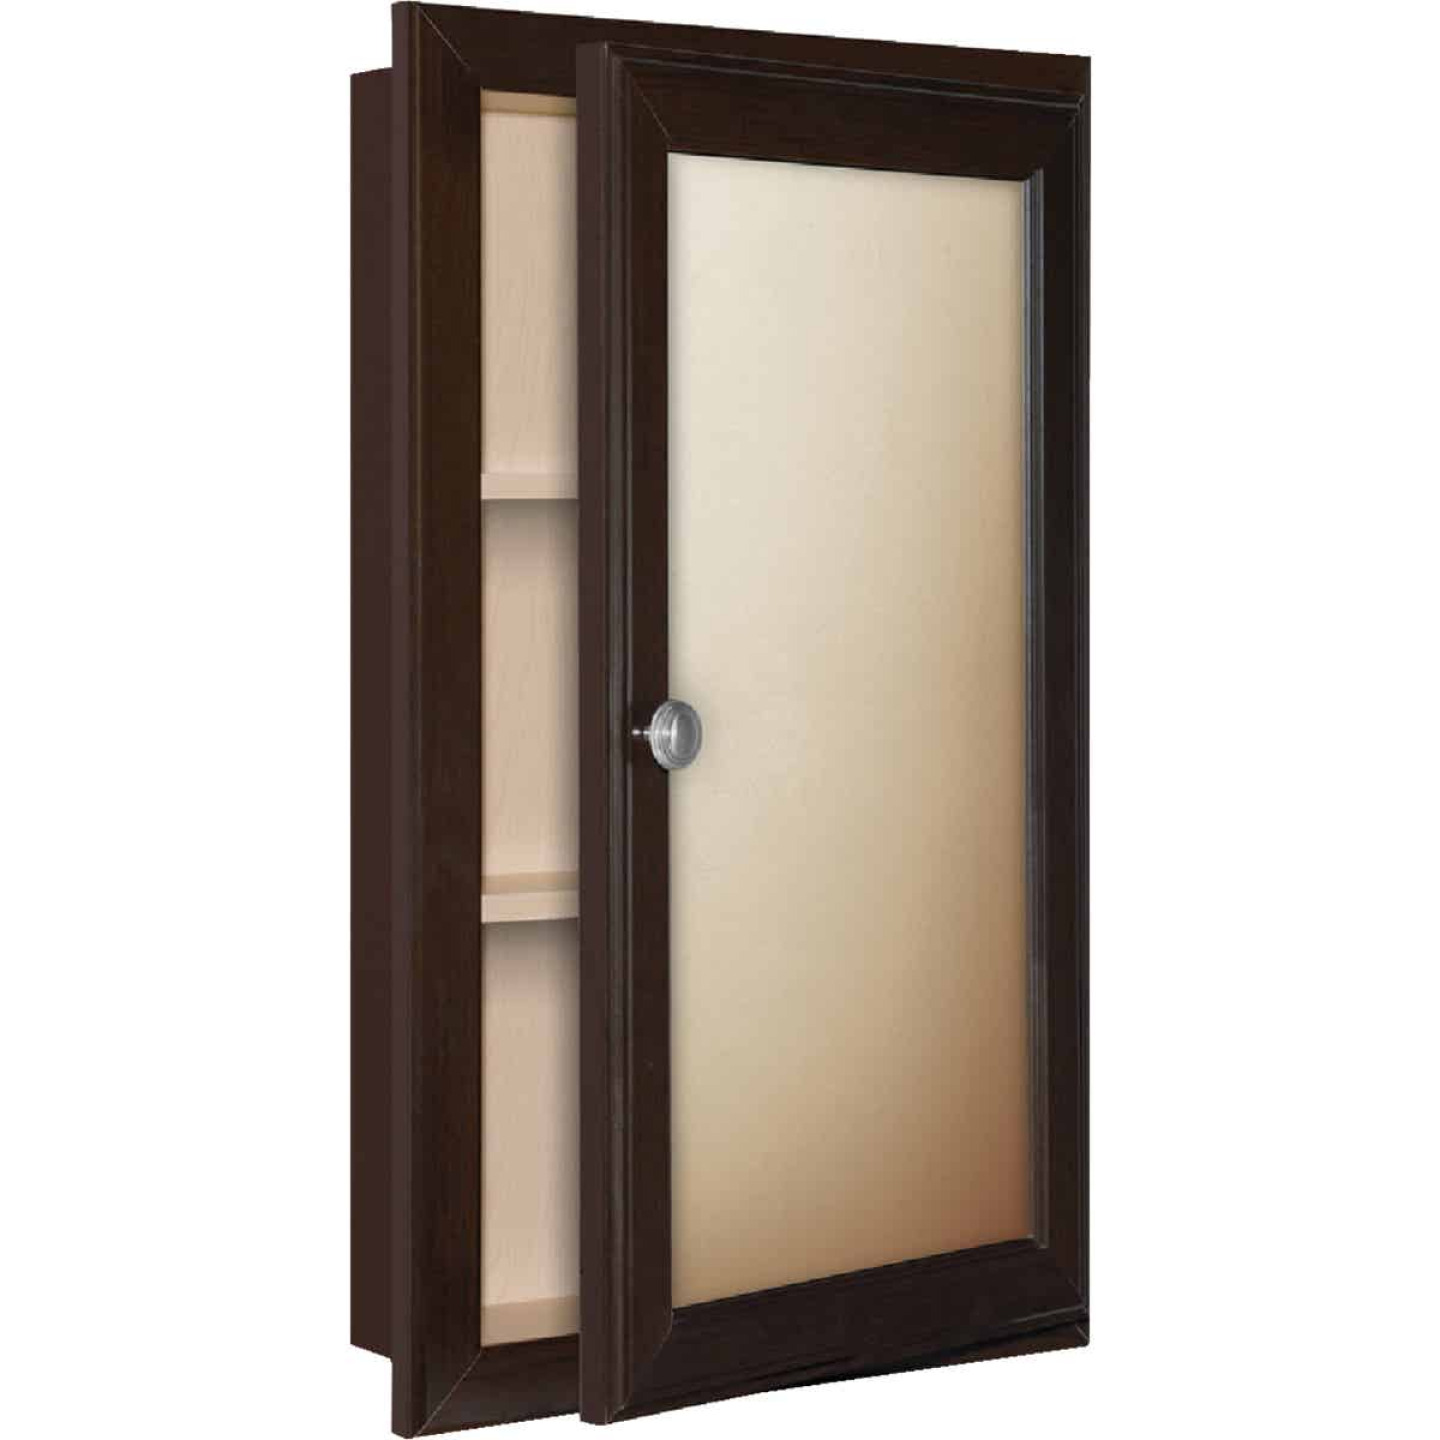 Continental Cabinets Java 15 75 In W X 25 75 In H X 4 75 In D Single Mirror Surface Recess Mount Framed Medicine Cabinet Do It Best World S Largest Hardware Store